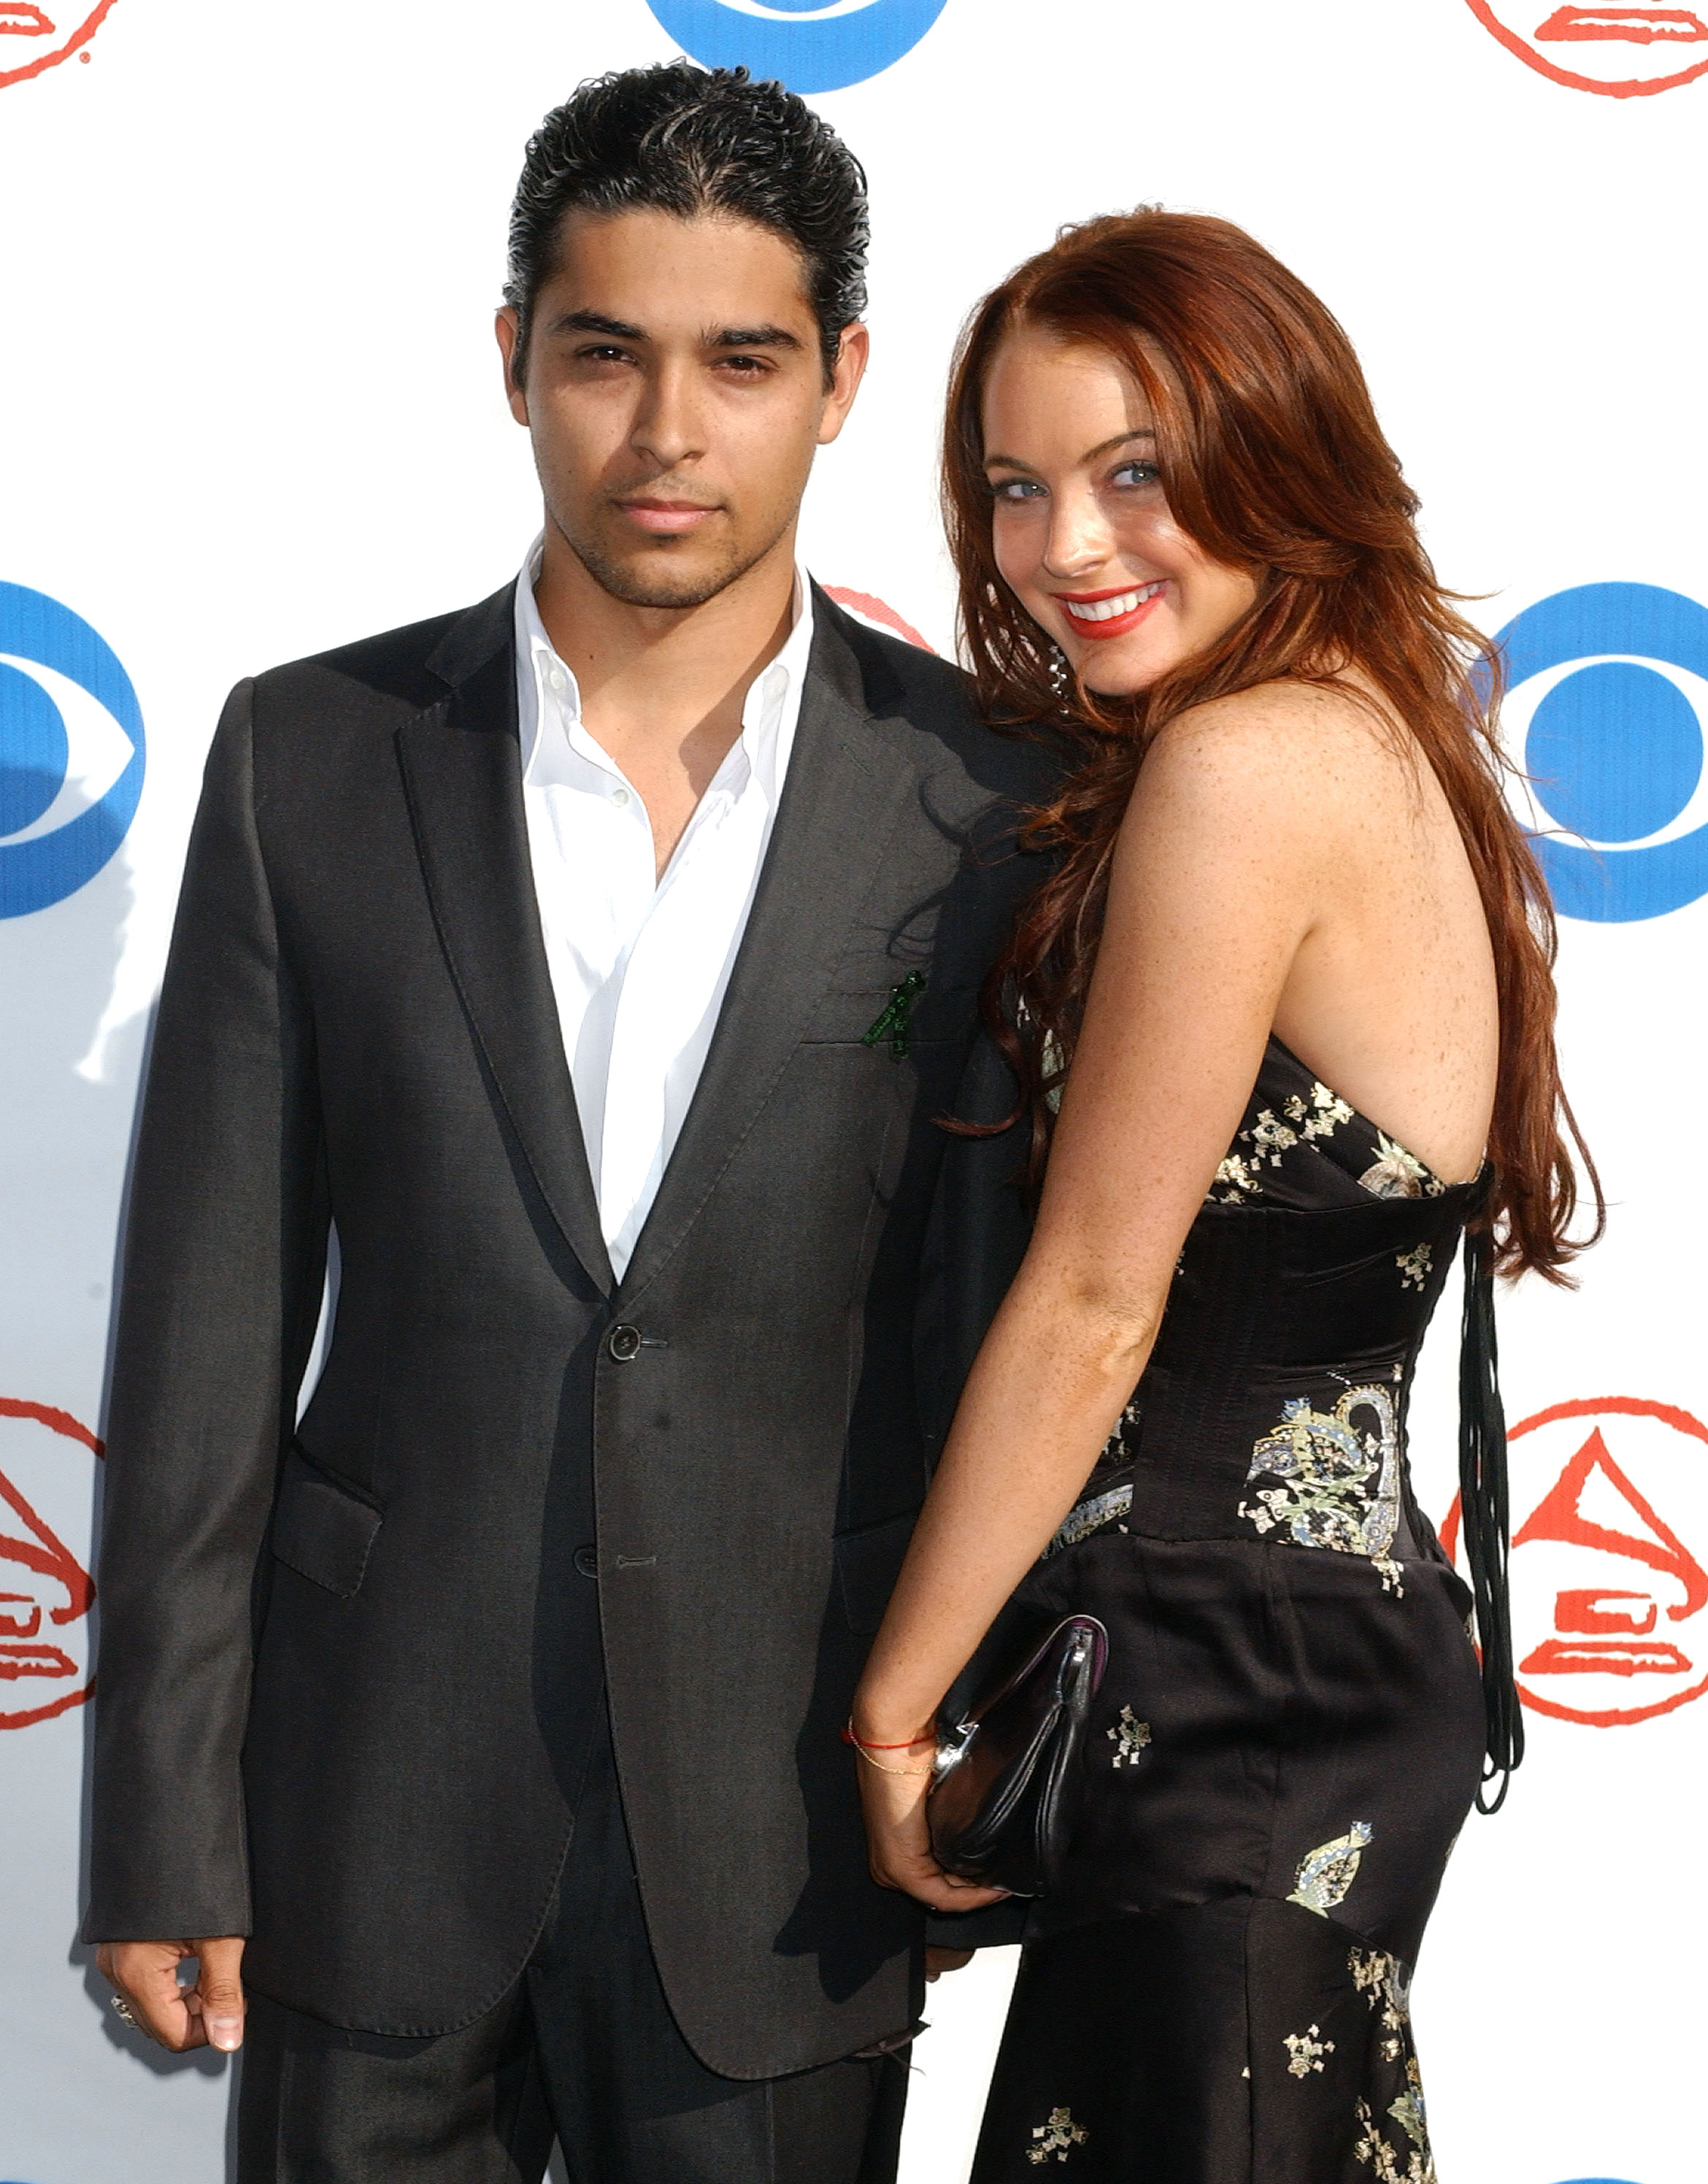 """Lindsay Lohan love life gallery - Lohan dated the That '70s Show star in 2004, telling Stern that Valderrama was her """"first guy"""" and that """"he's a good guy."""""""